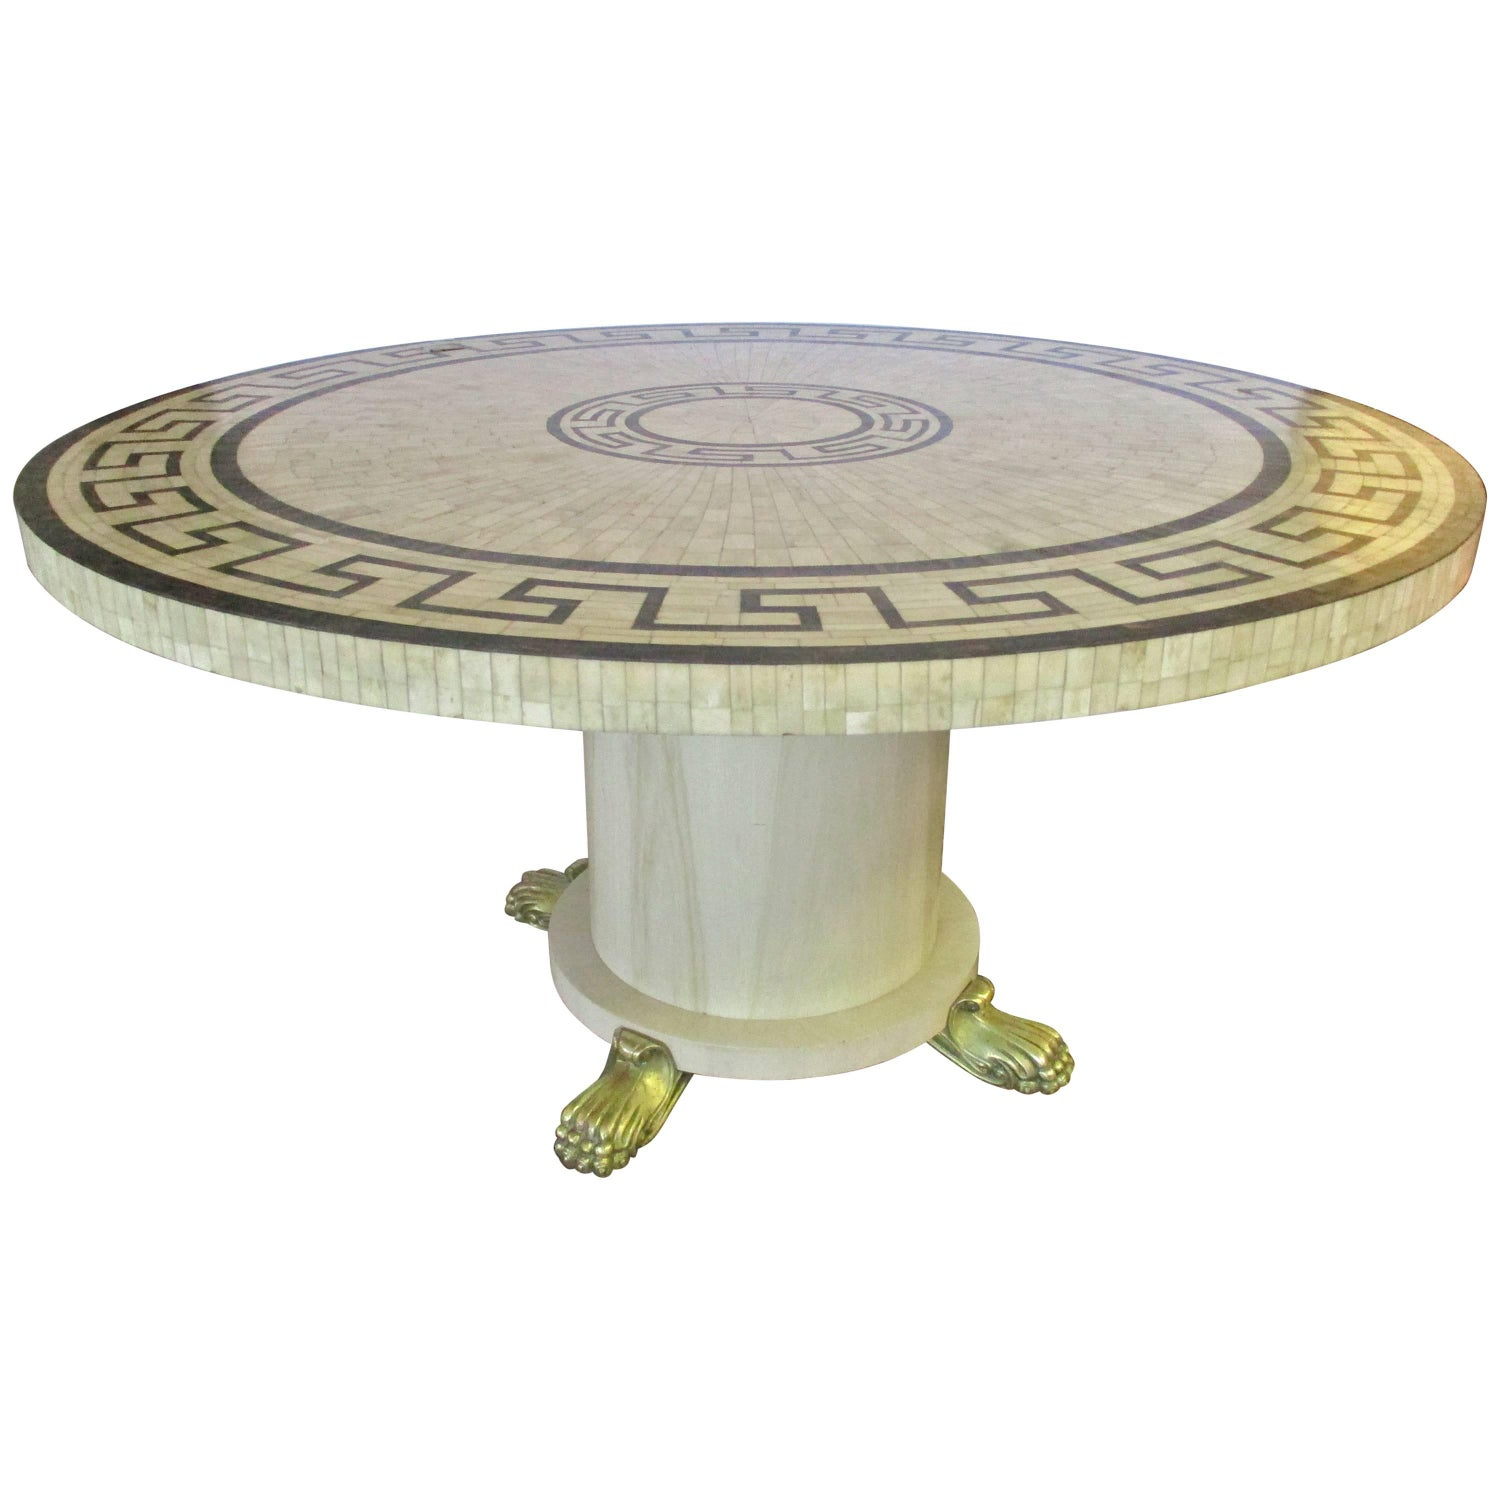 Bone Inlay Round Table with Greek Key Design For Sale at 1stdibs